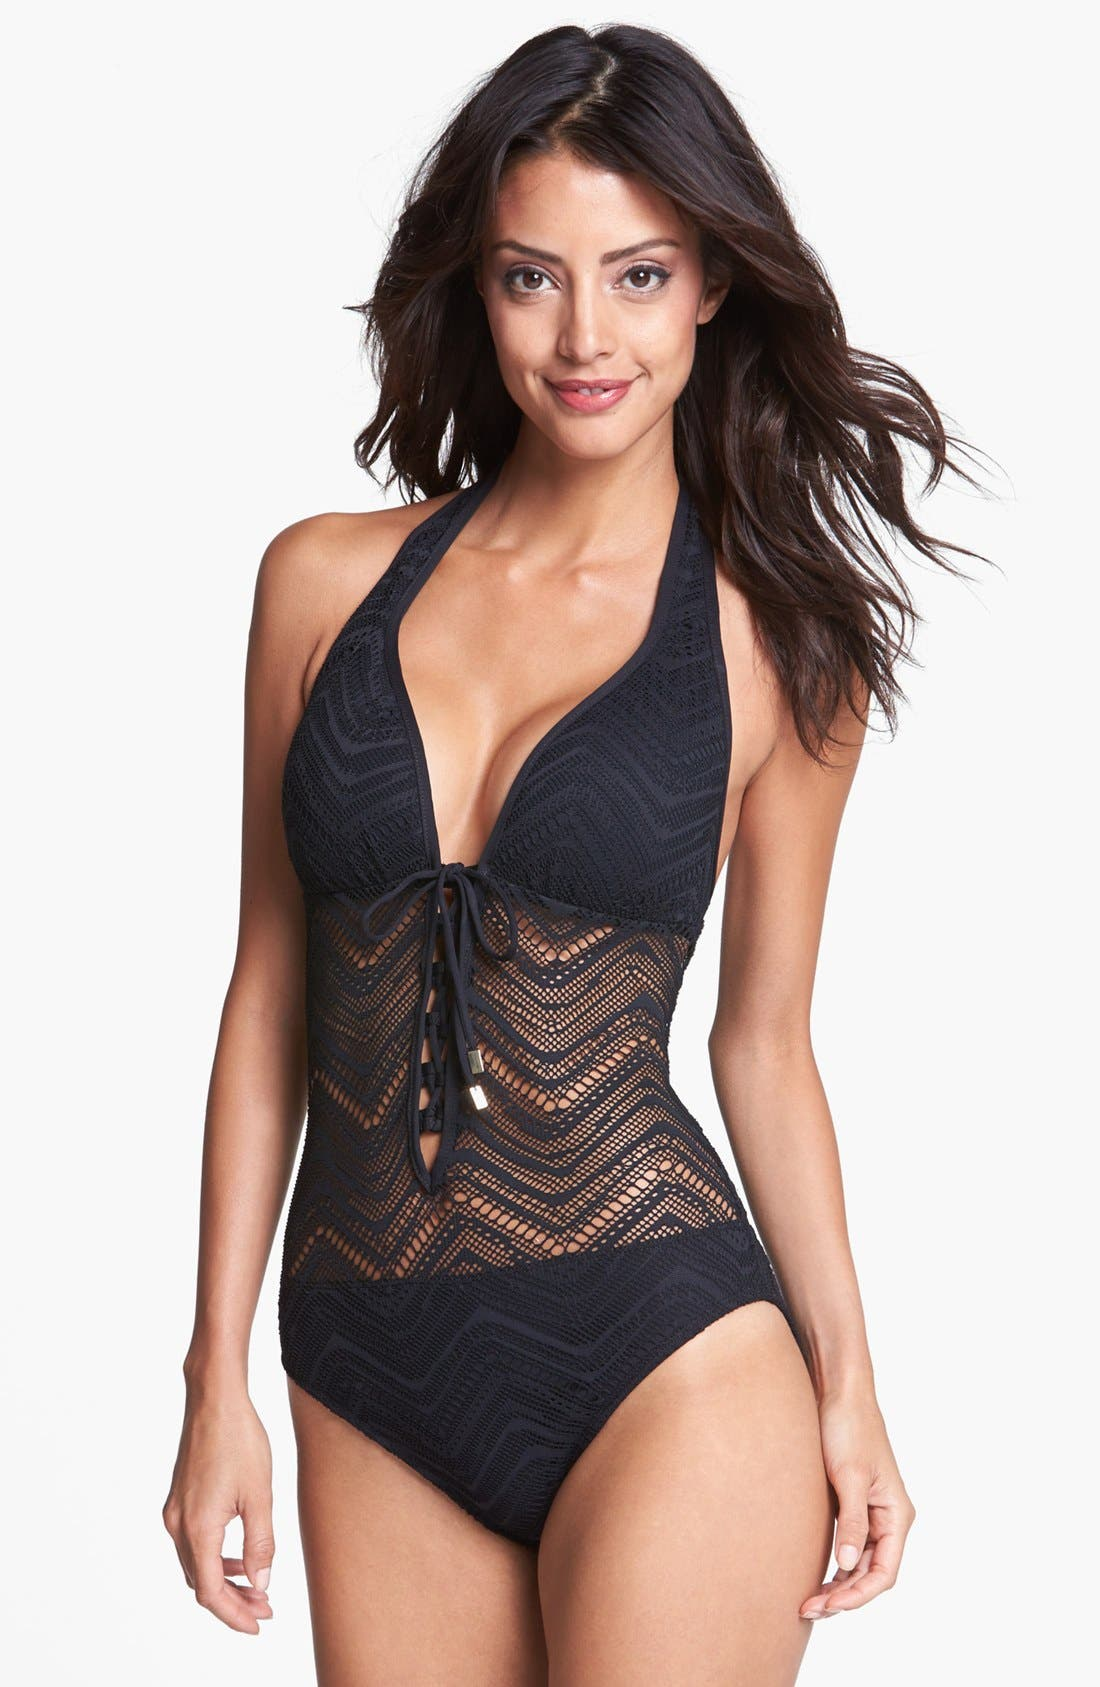 Alternate Image 1 Selected - BLEU Rod Beattie 'Peep Show' One-Piece Halter Swimsuit (Nordstrom Exclusive)